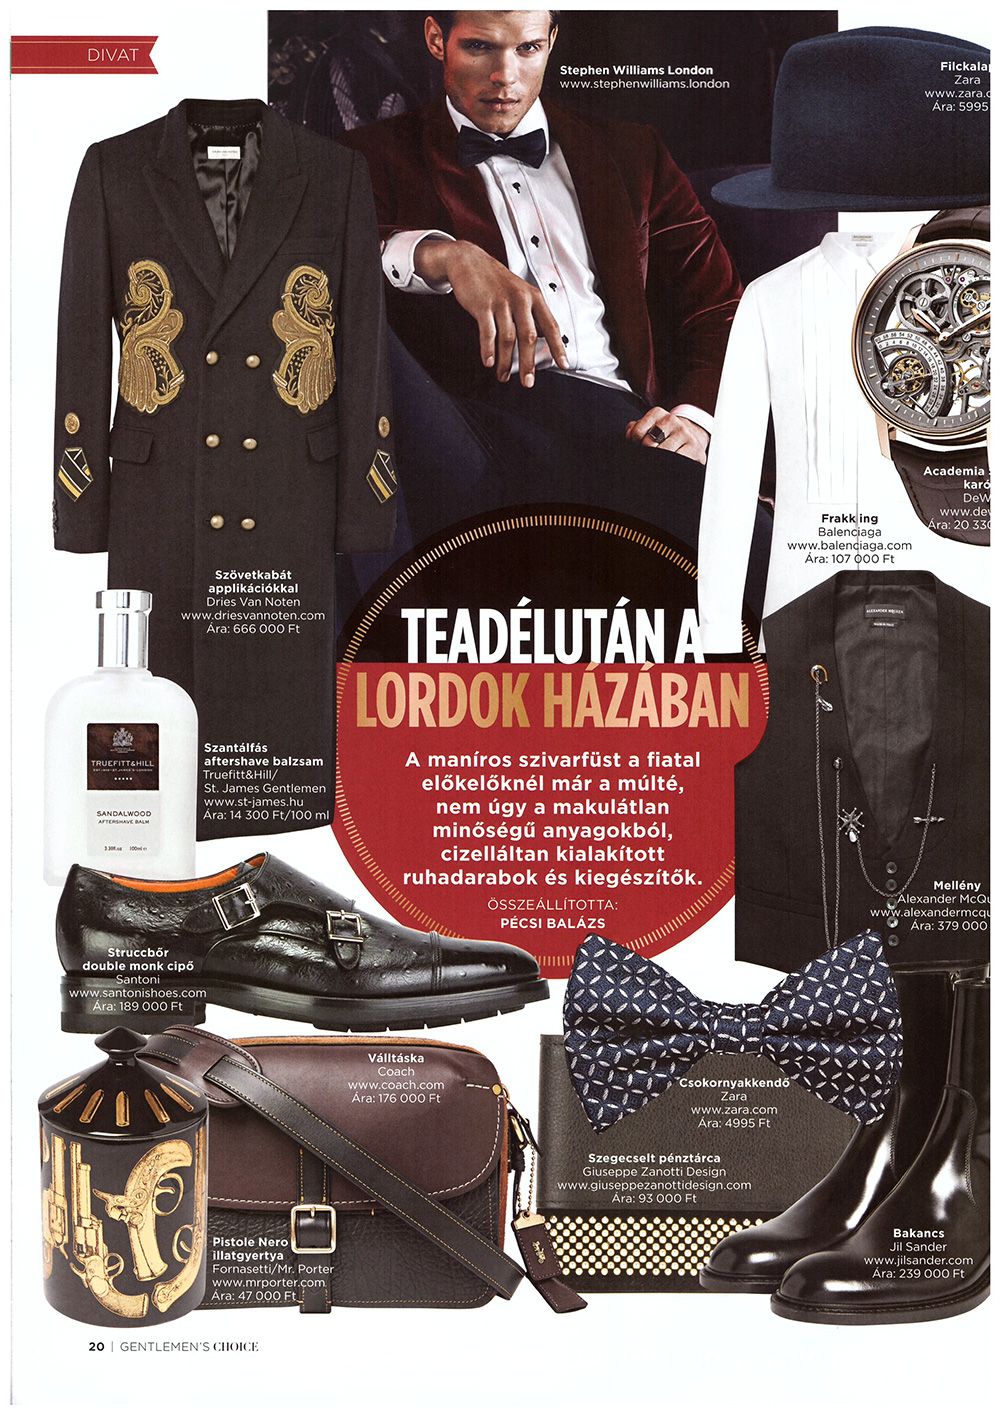 Stephen Williams London - Gentleman's Choice Magazine